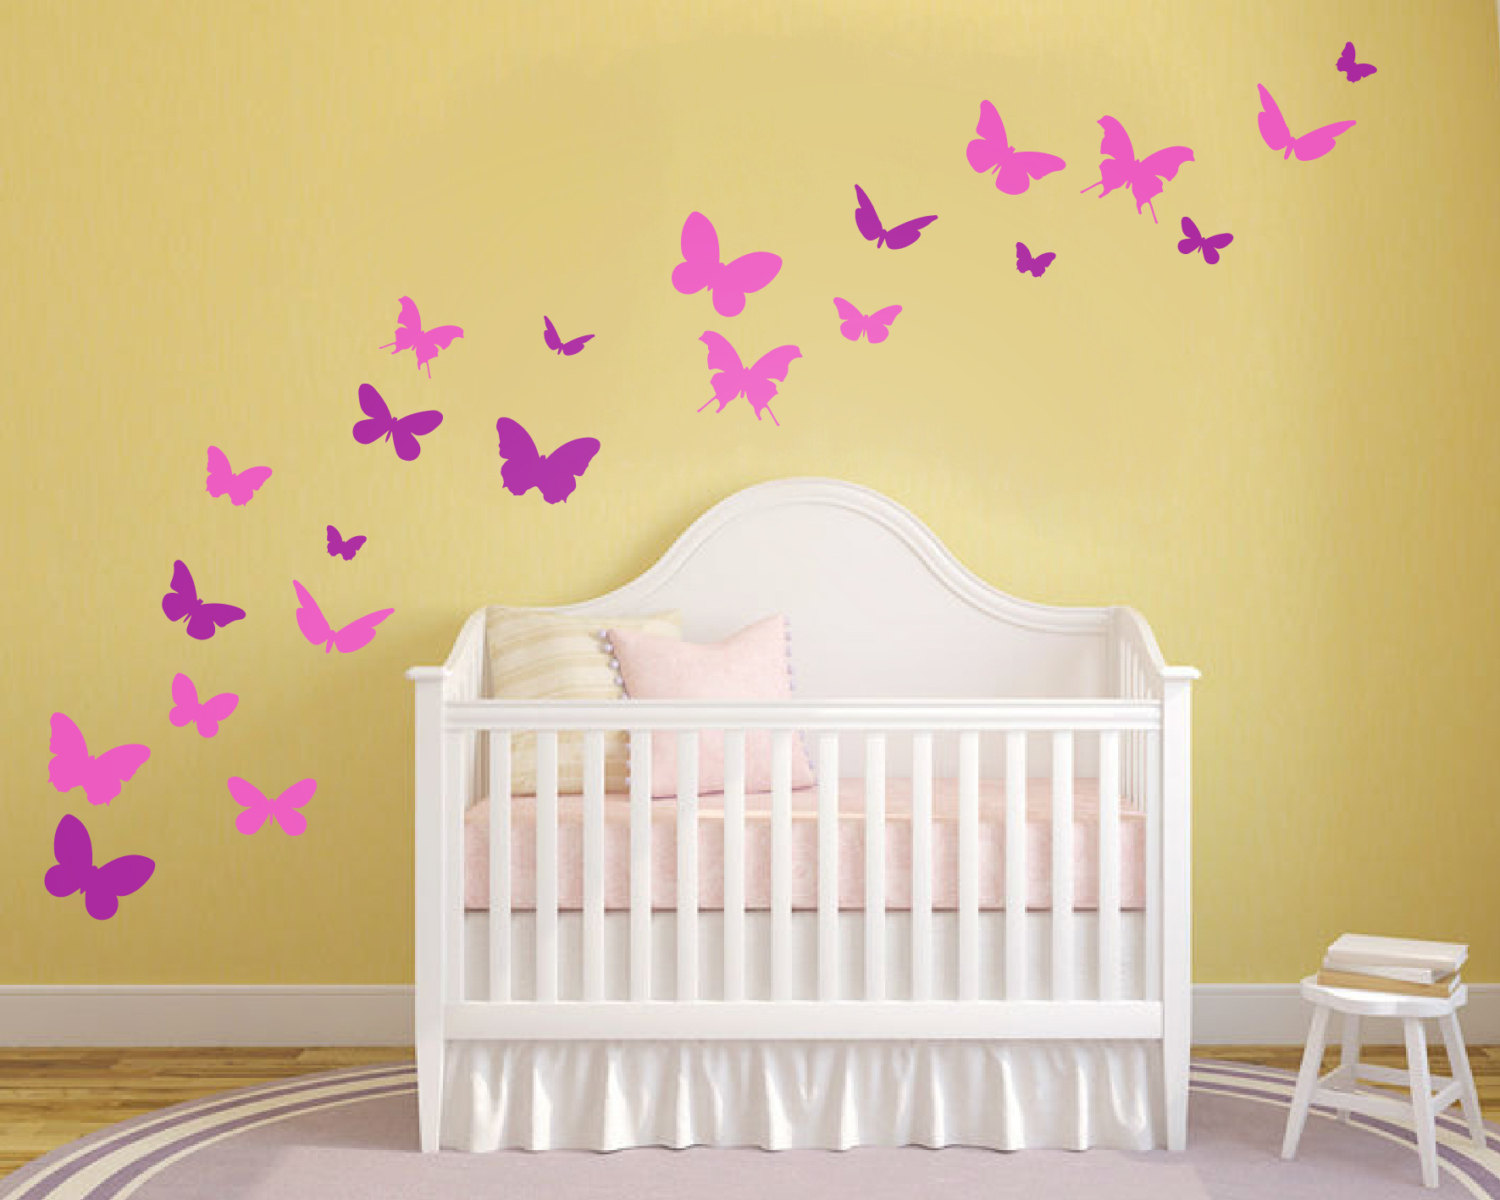 Set of Butterfly Wall Stickers - Butterfly Decor - Butterfly Wall ...